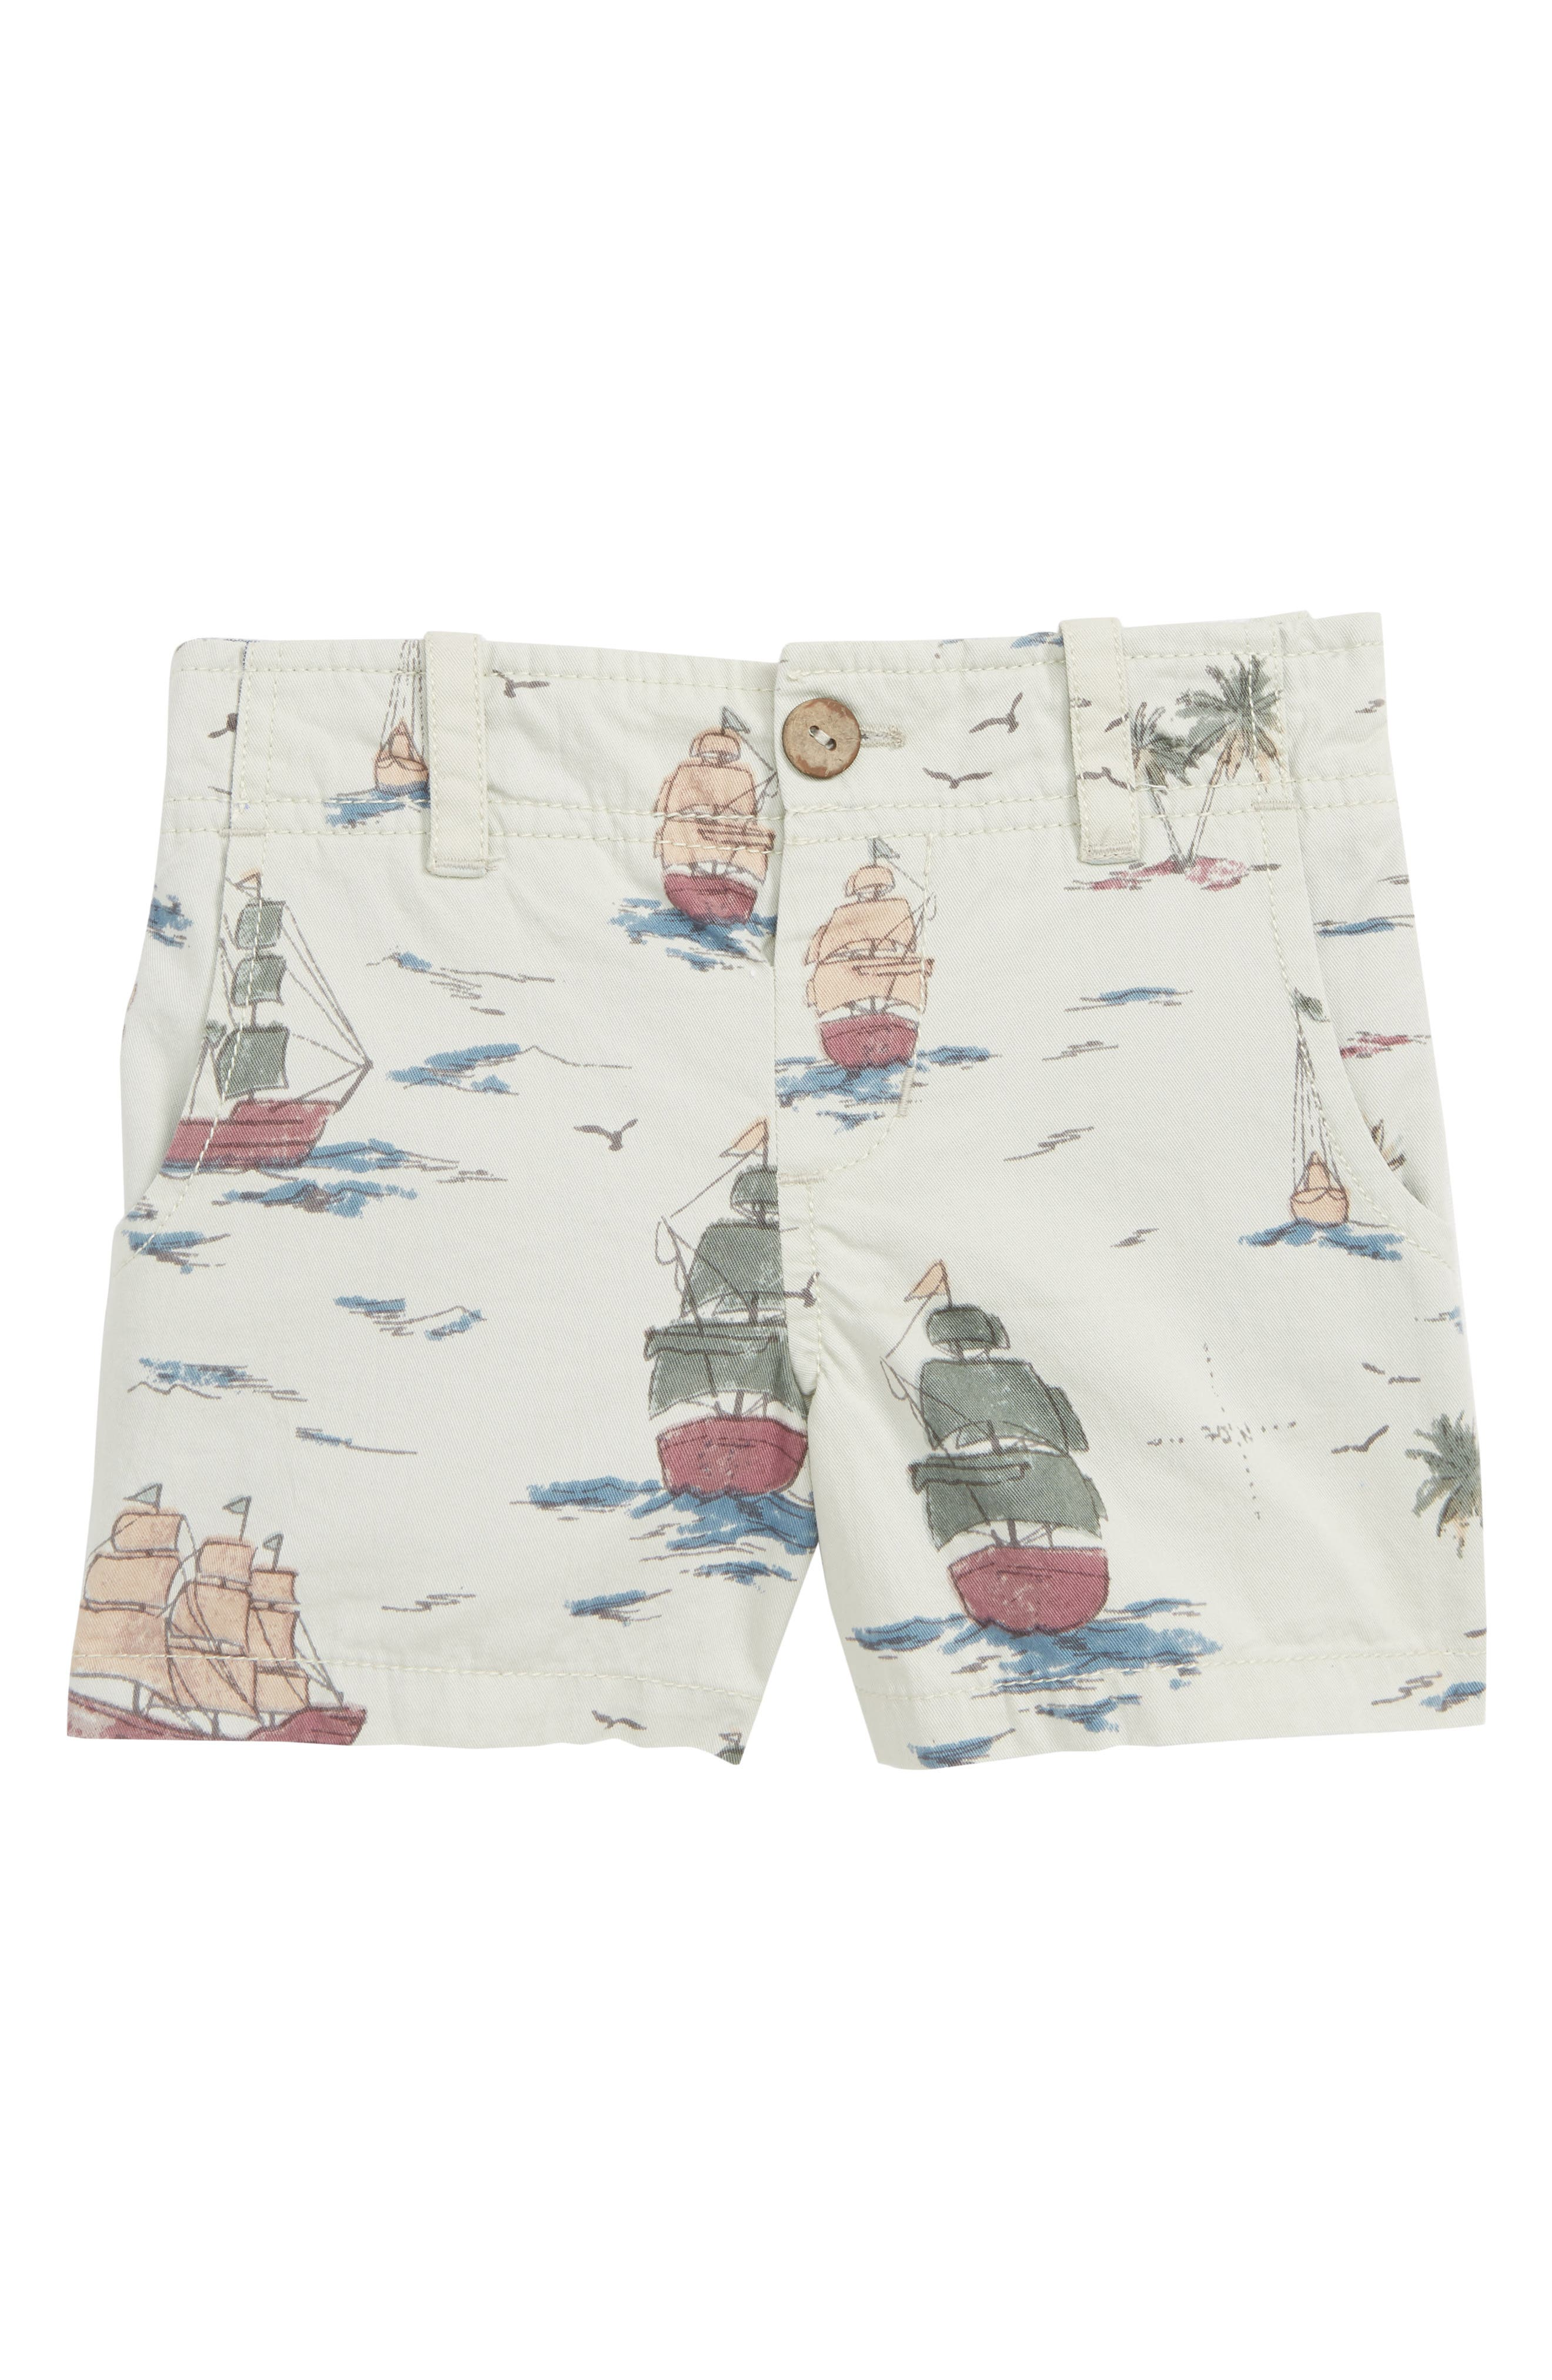 PEEK ESSENTIALS Pirate Ship Shorts, Main, color, KHAKI